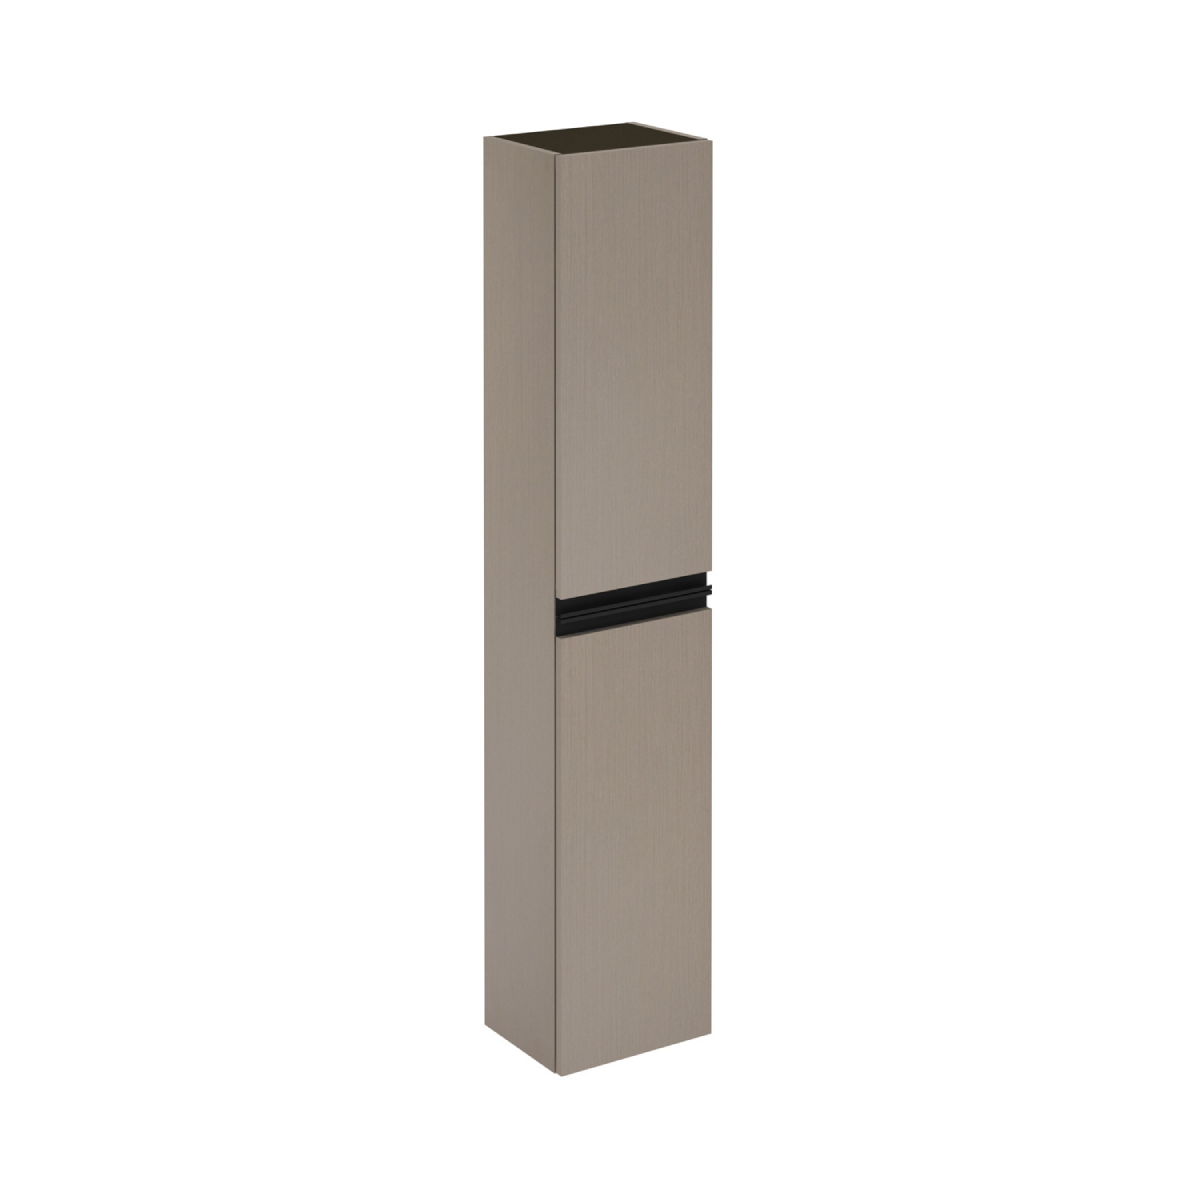 Frontline Structure Grey Ash Tall Unit 30Cm